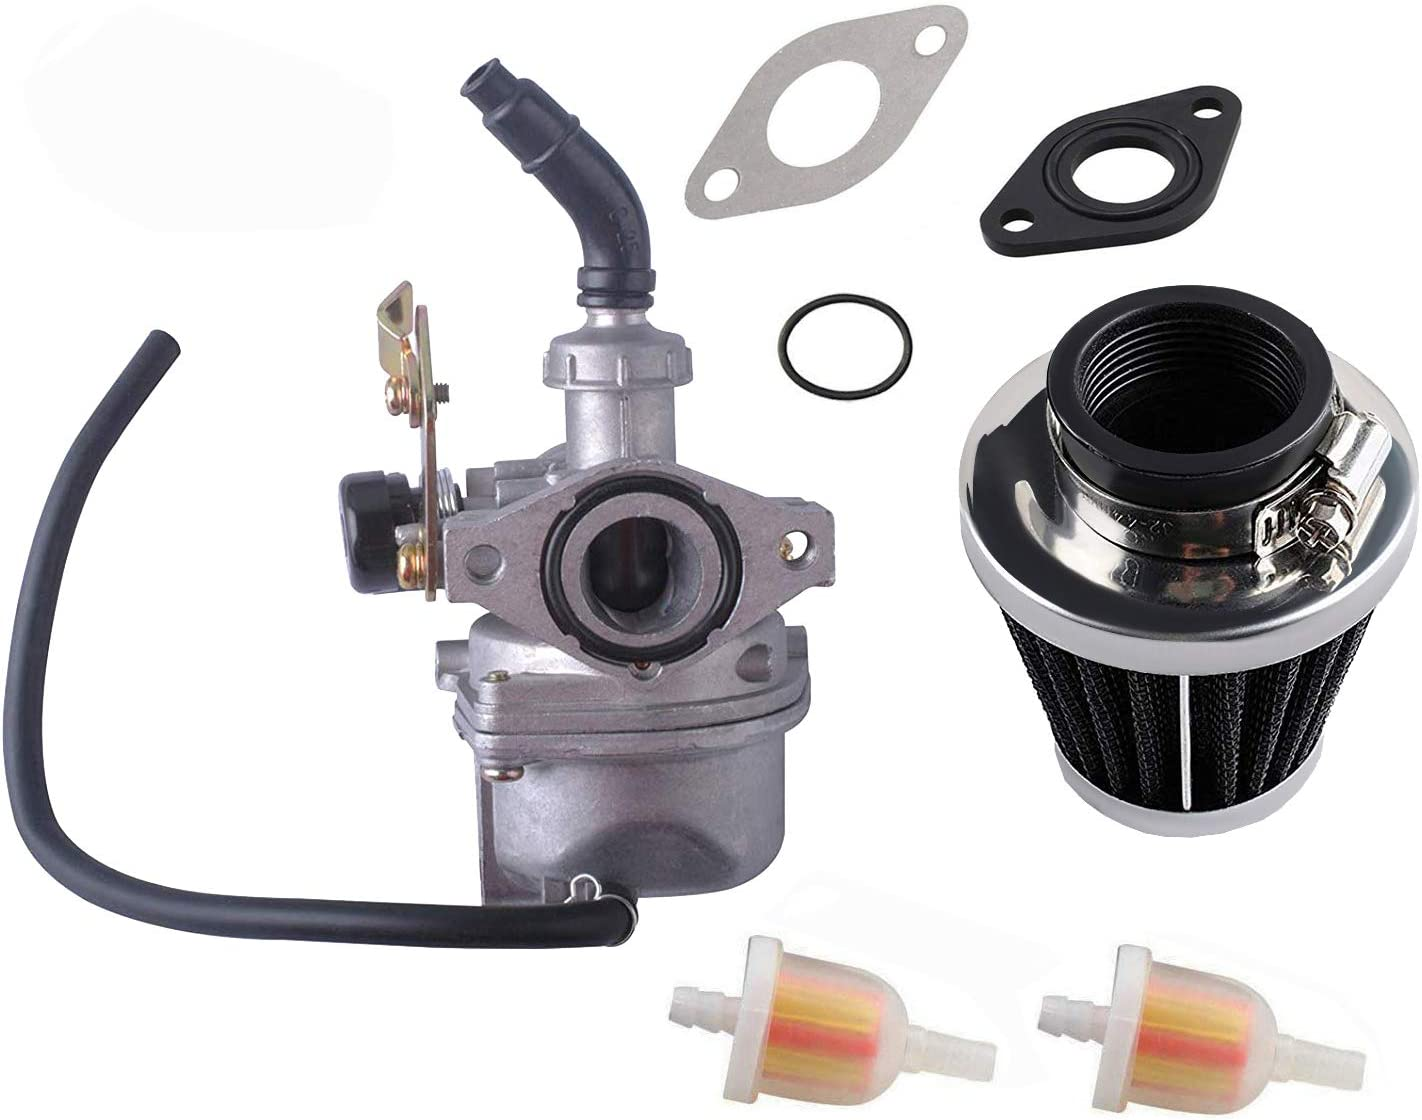 chinese 4 wheeler fuel filter amazon com podoy pz19 carburetor for compatible with taotao atv  amazon com podoy pz19 carburetor for